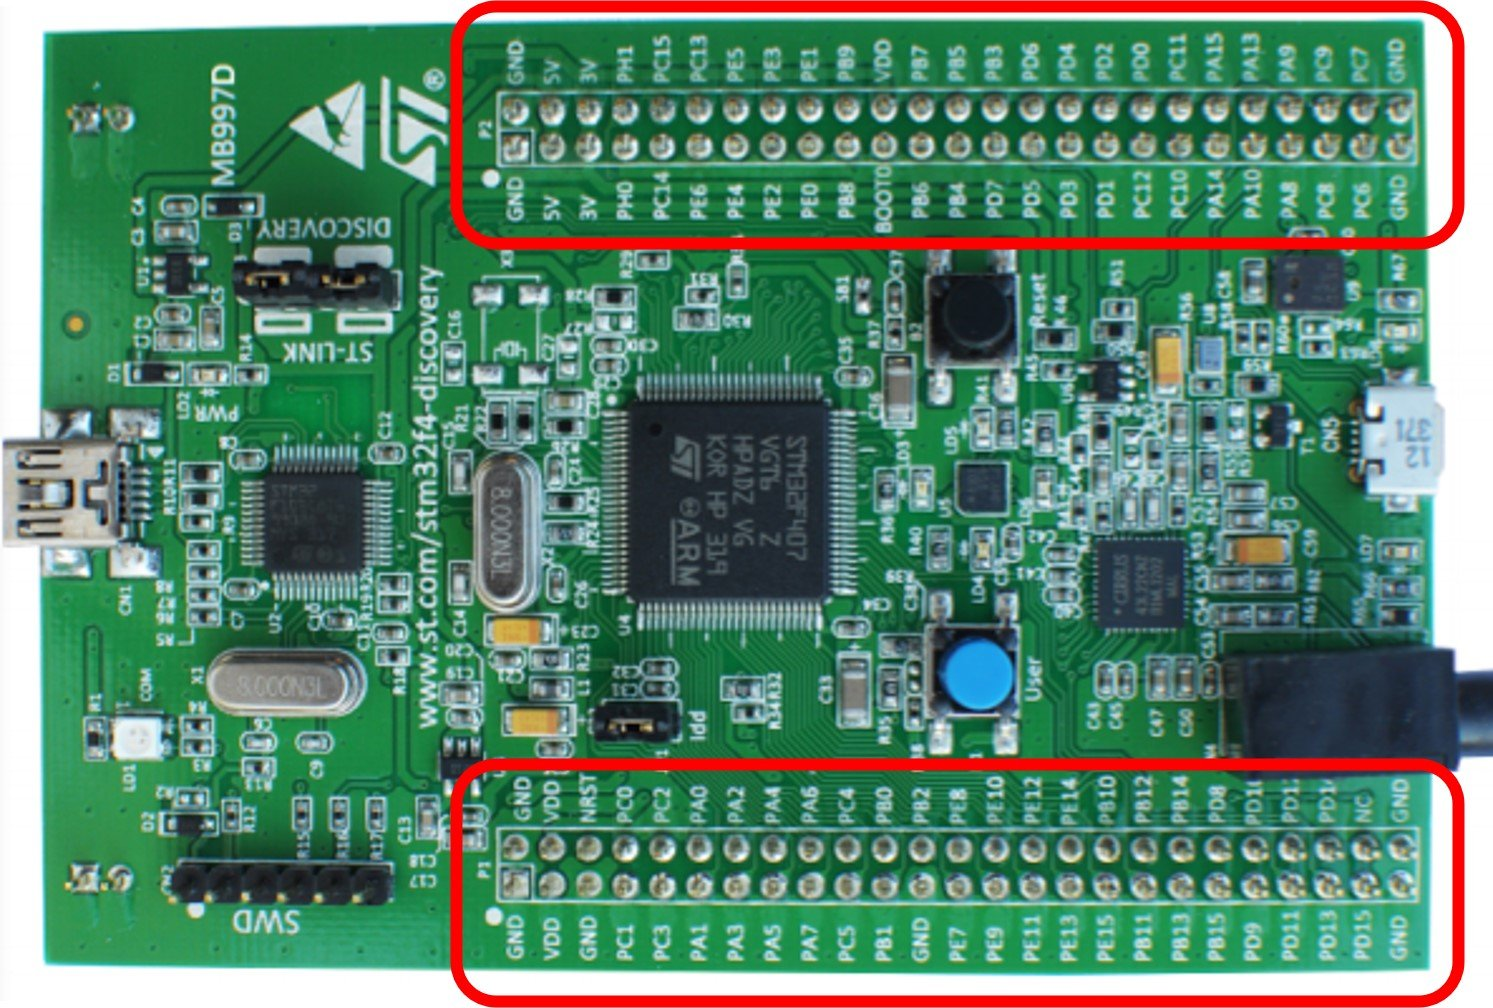 STM32F4 Discovery Board GPIO header pins